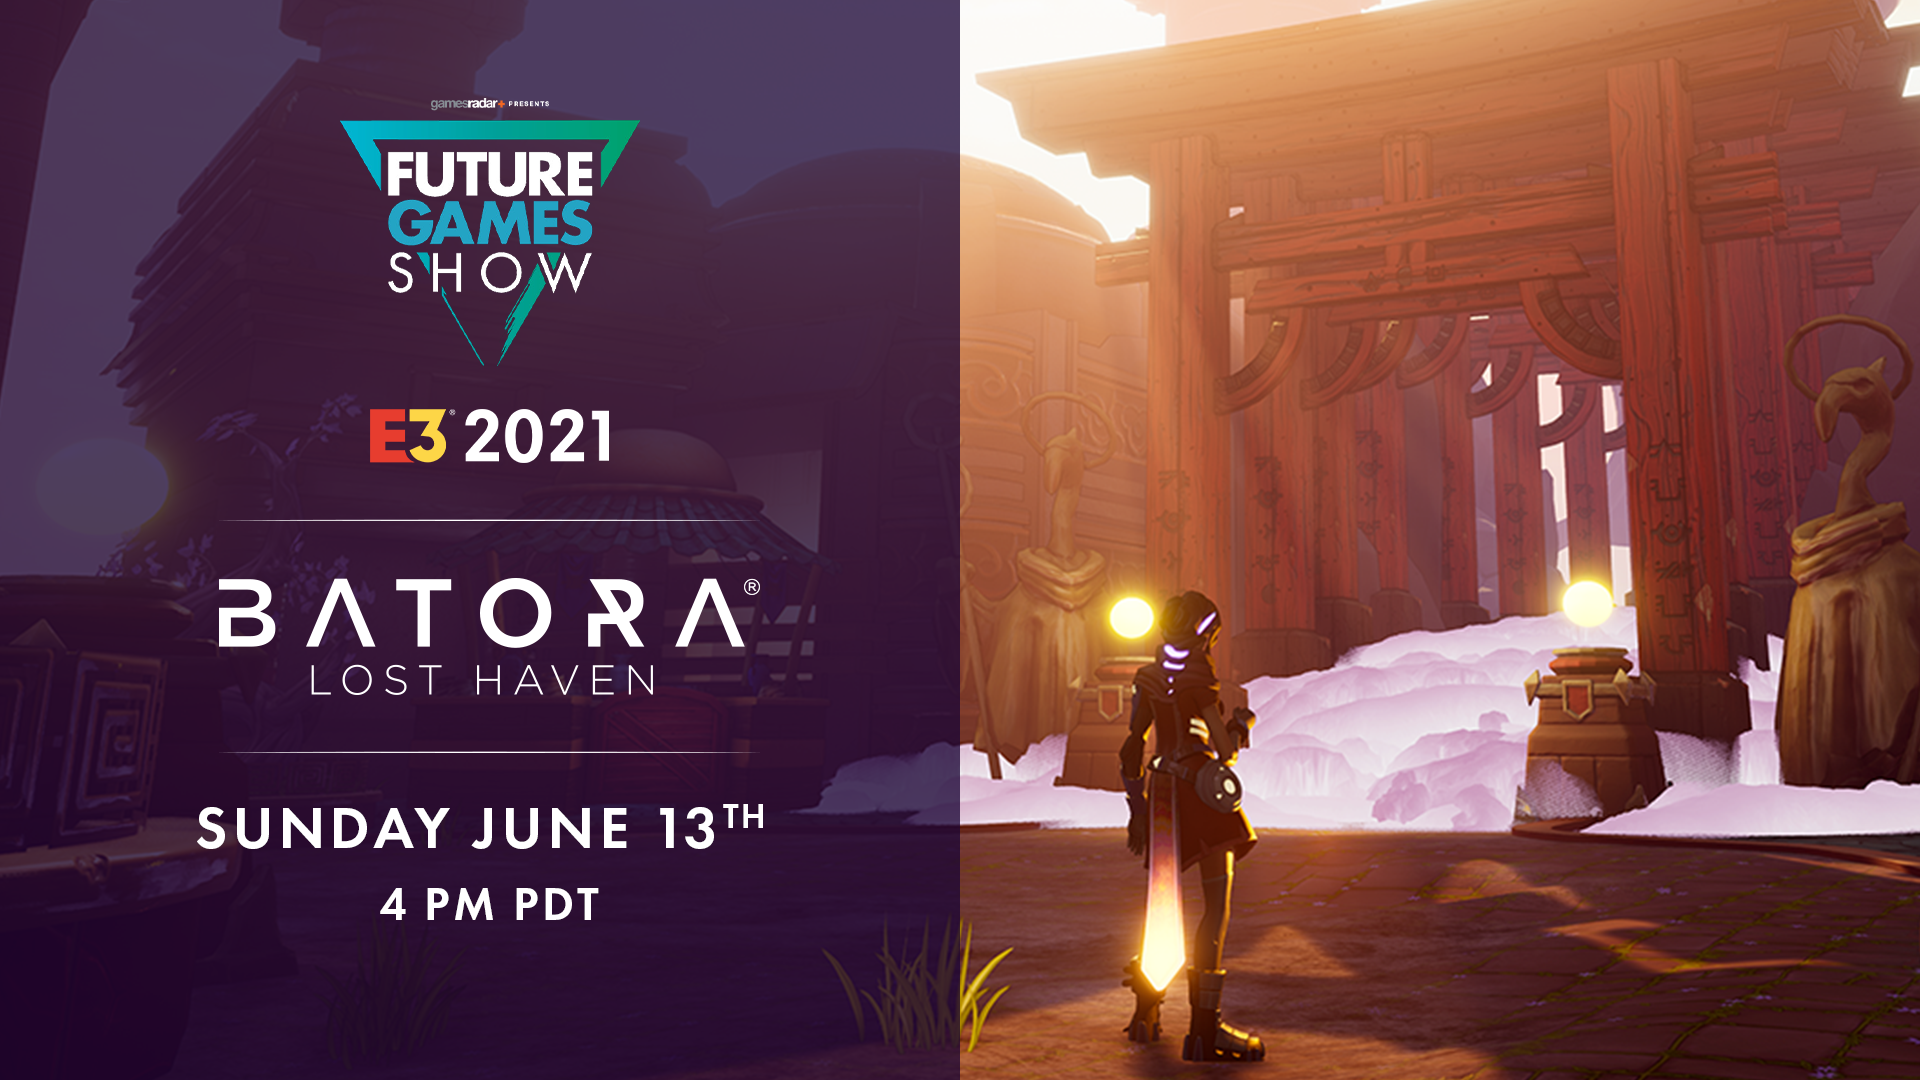 Batora: Lost Haven shortlisted to take part in the Future Games Show!